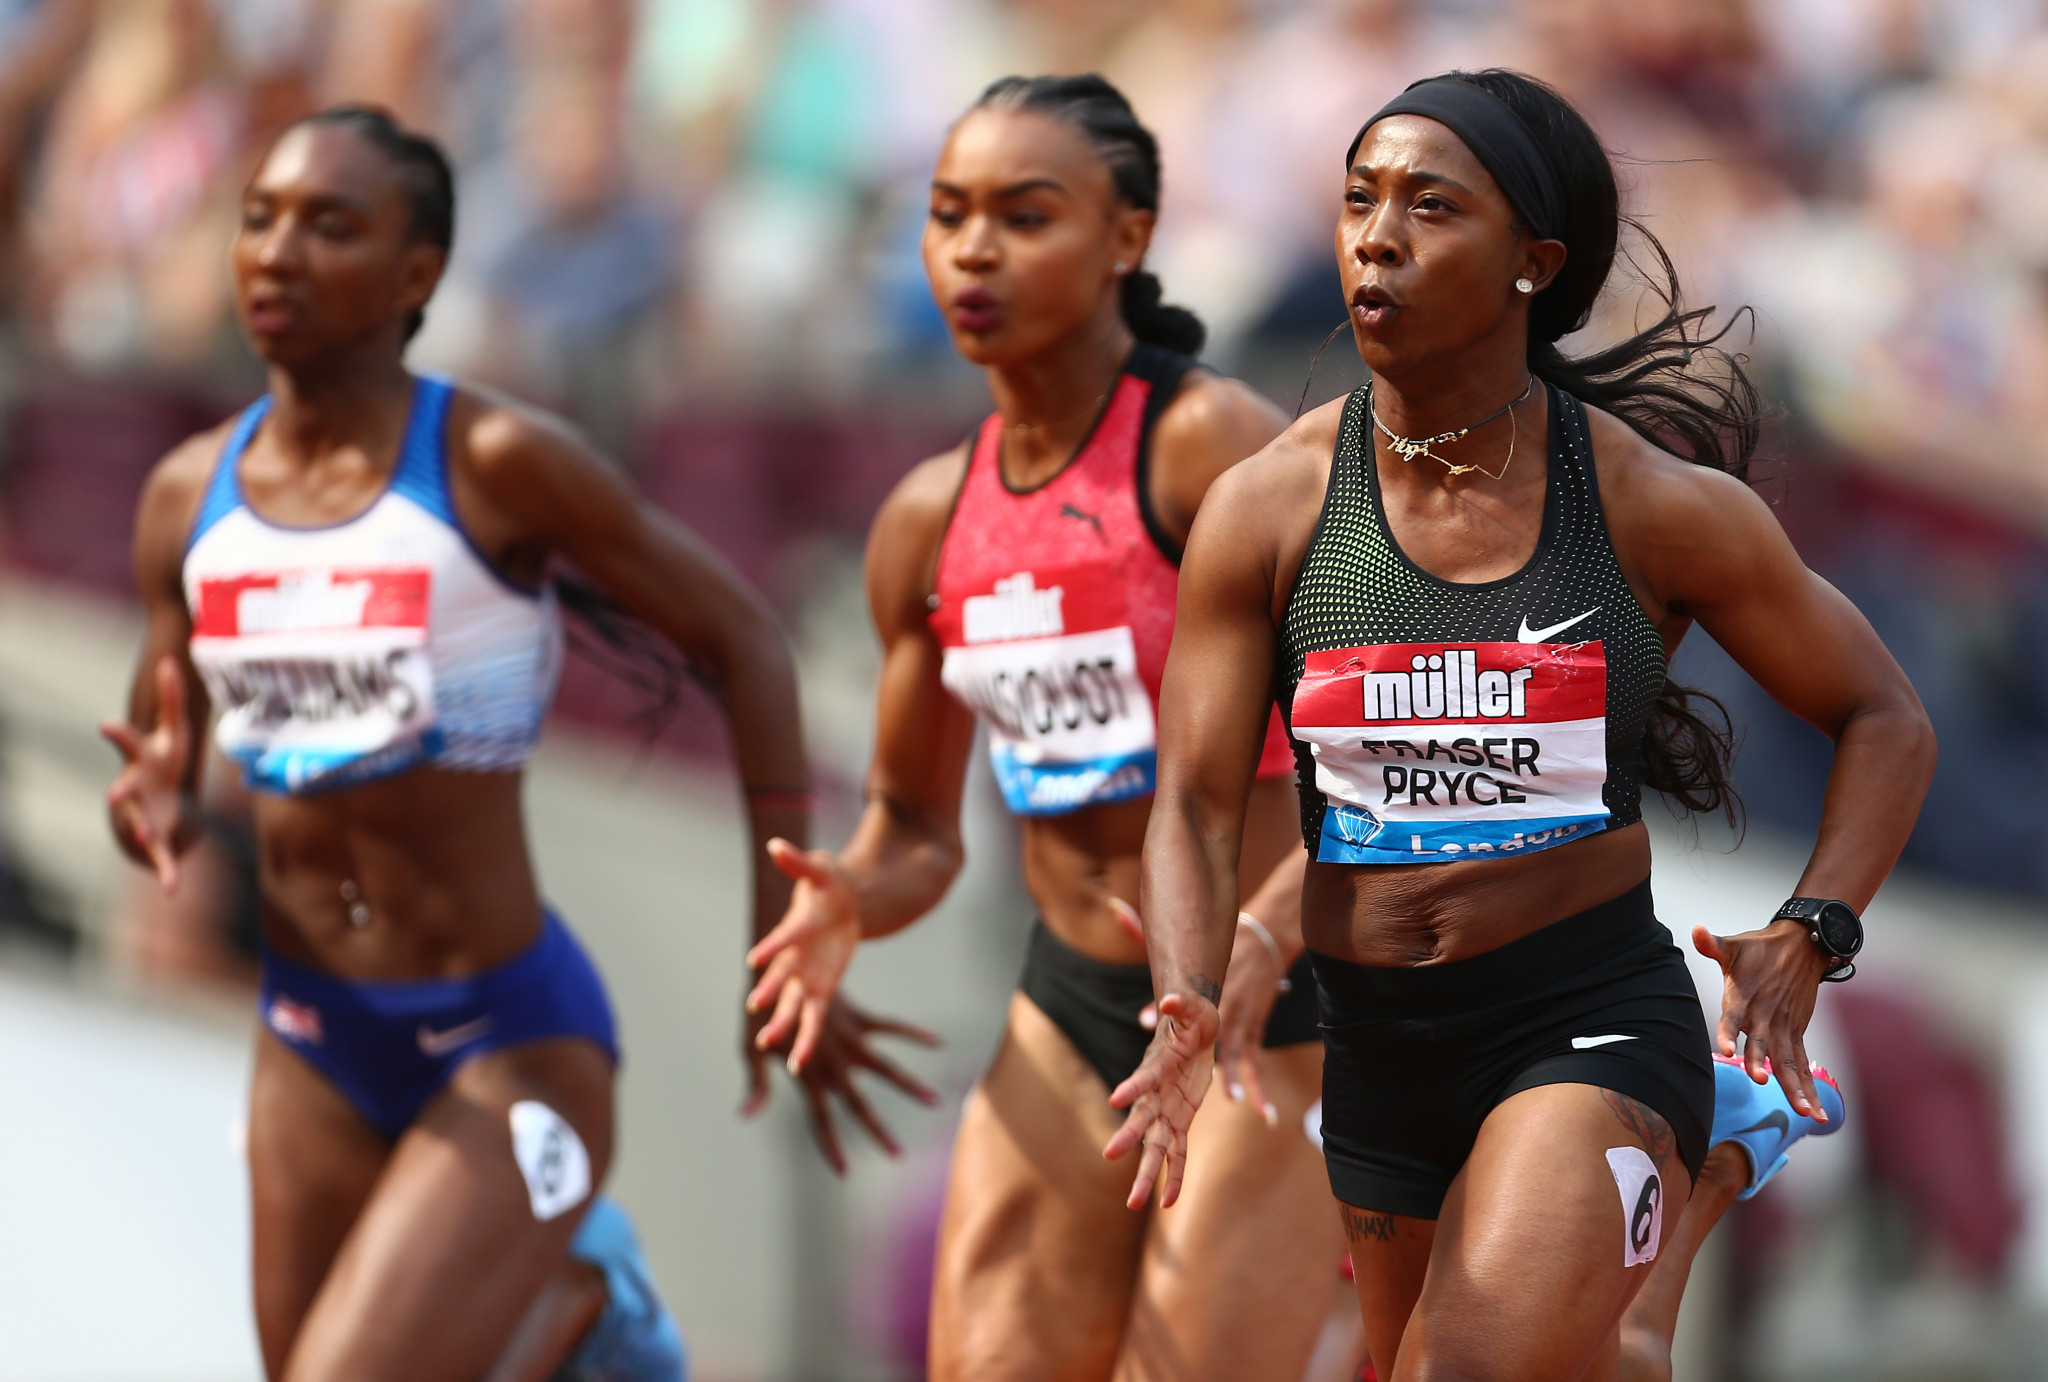 Double Olympic gold medallist and hurdles world record holder among entrants at NACAC Championships